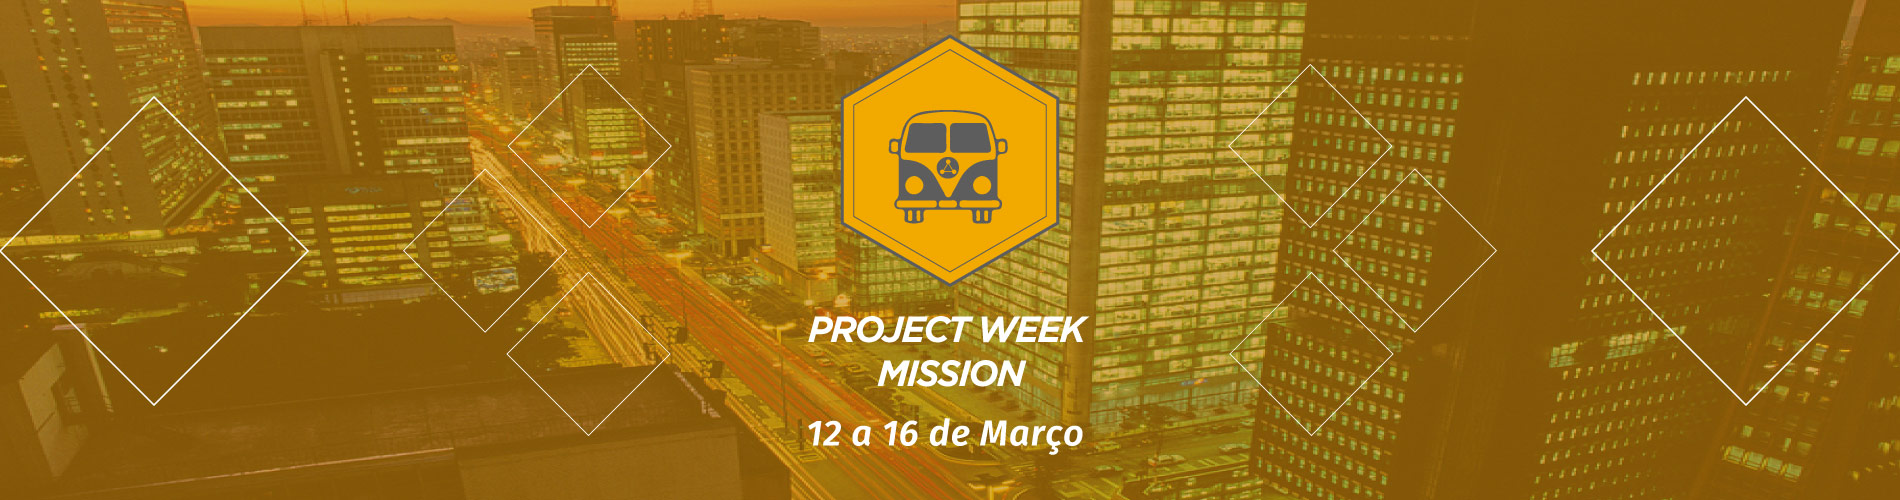 project-week-mission-12-a-16-de-marco